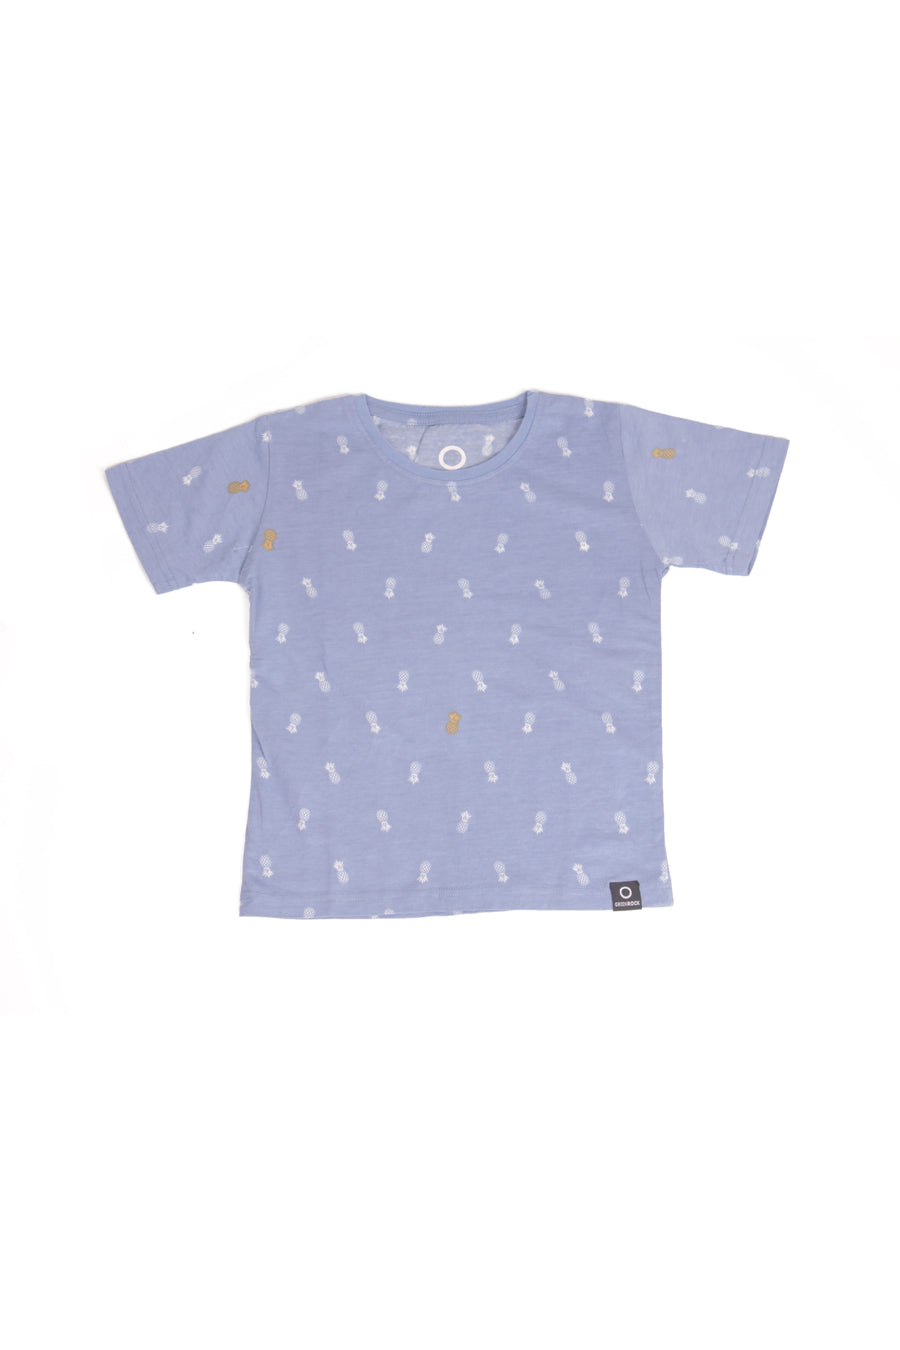 T-Shirt Kids Pineapple Medium Blue - Greenrock Indonesia